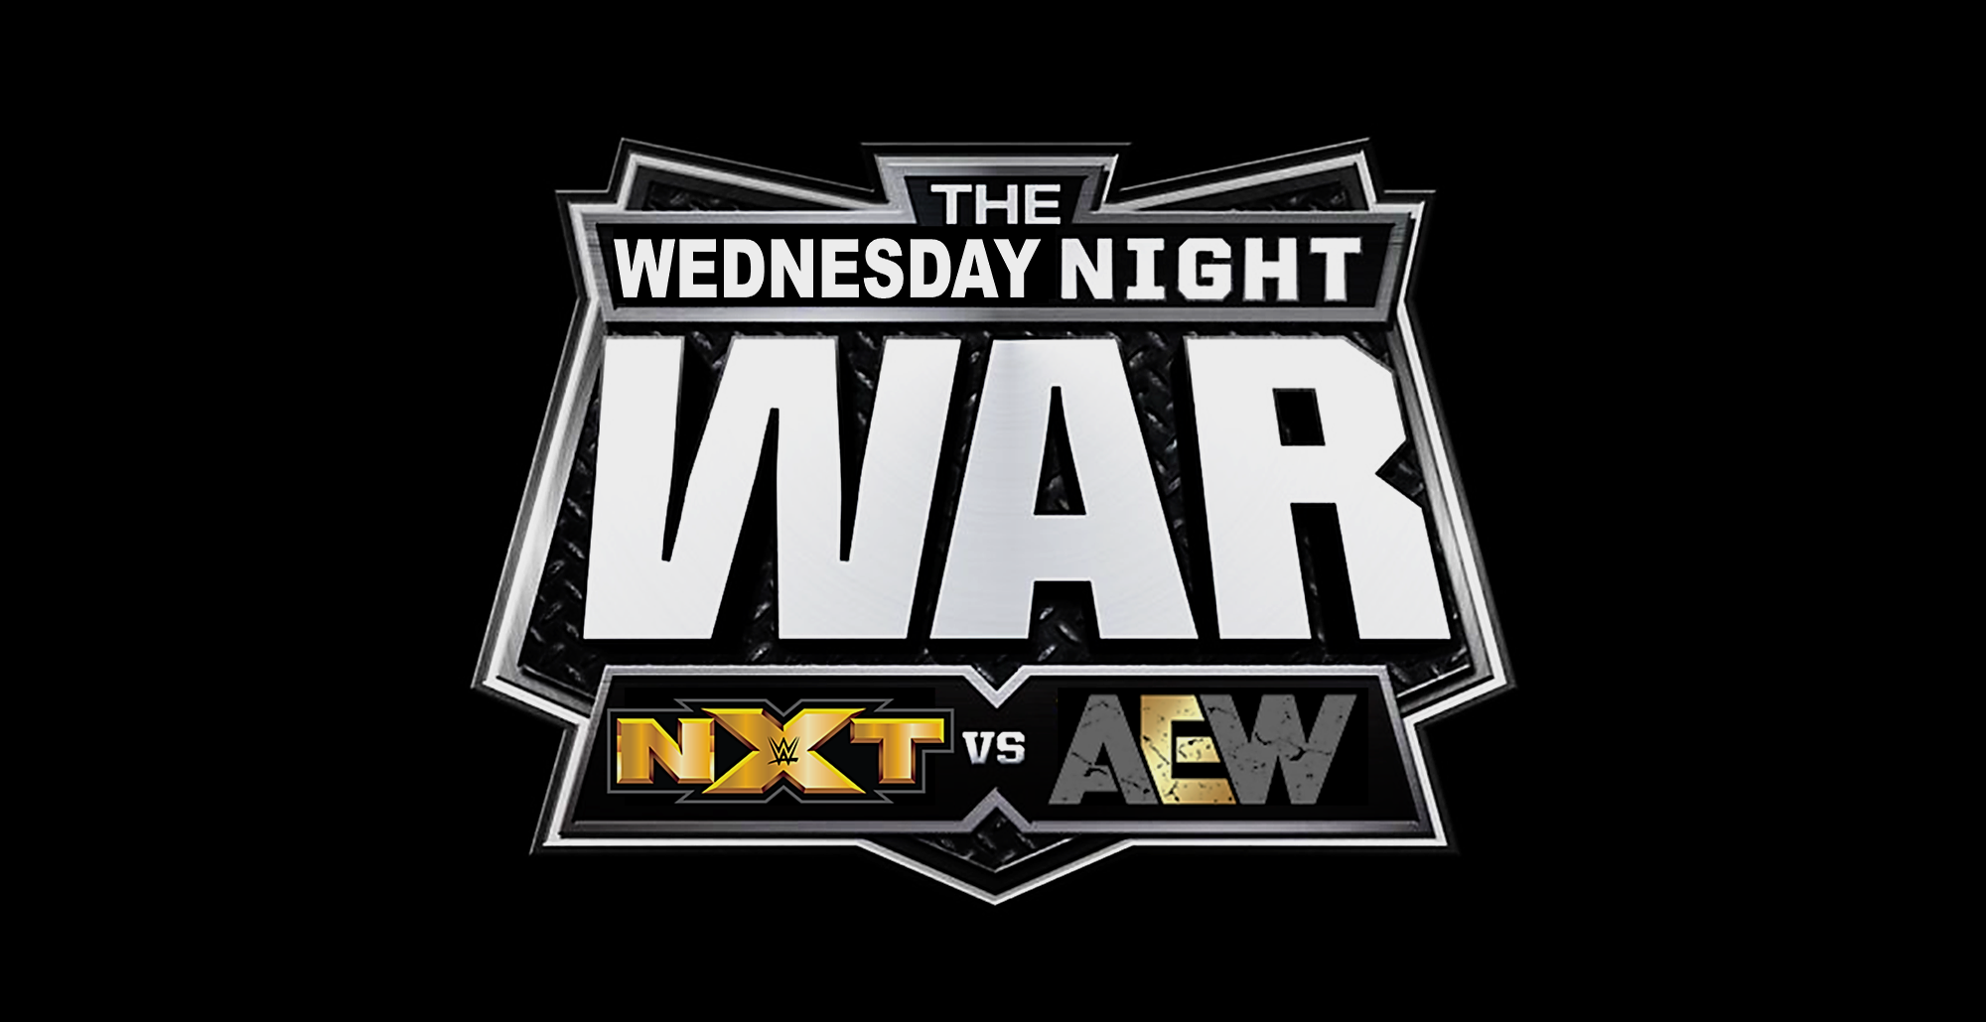 [Obrazek: Wednesday-Night-War-NXT-vs-AEW-logo-Augu...334173.png]